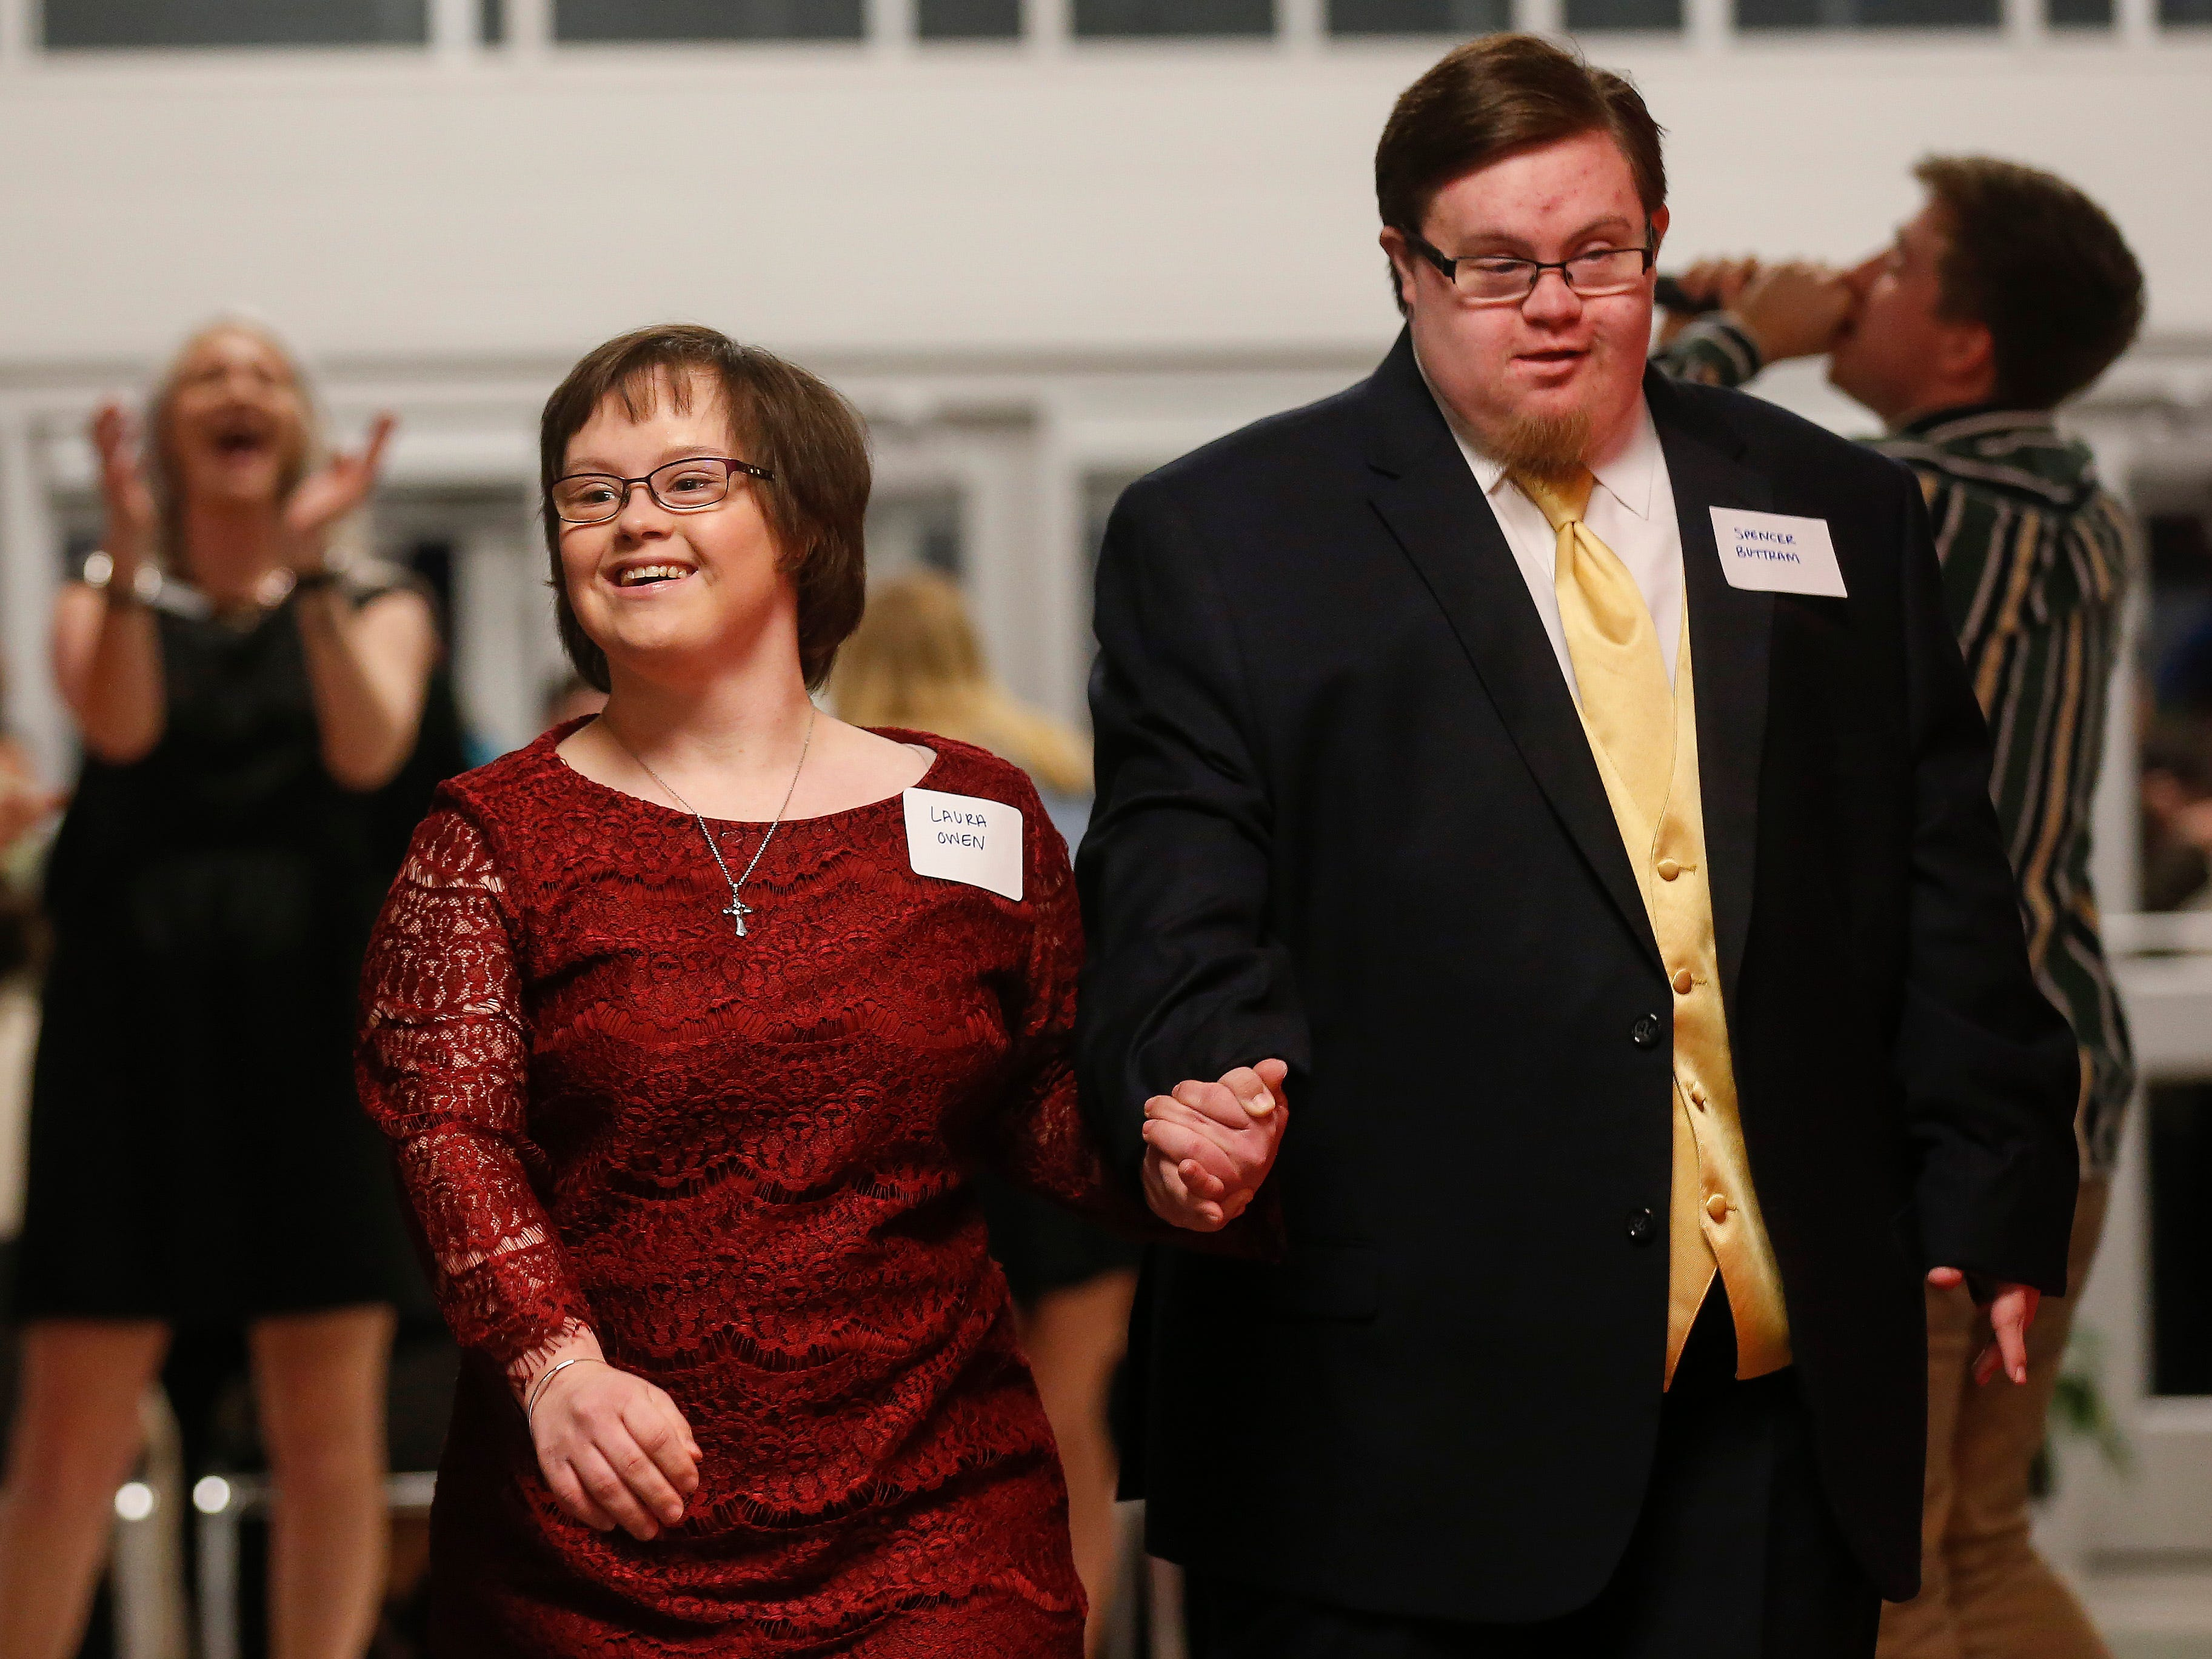 Spencer Buttram and Laura Owen walk hand-in-hand down the red carpet at the Camp Barnabas Snow Ball at Springfield Catholic High School on Saturday, Jan. 26, 2019.